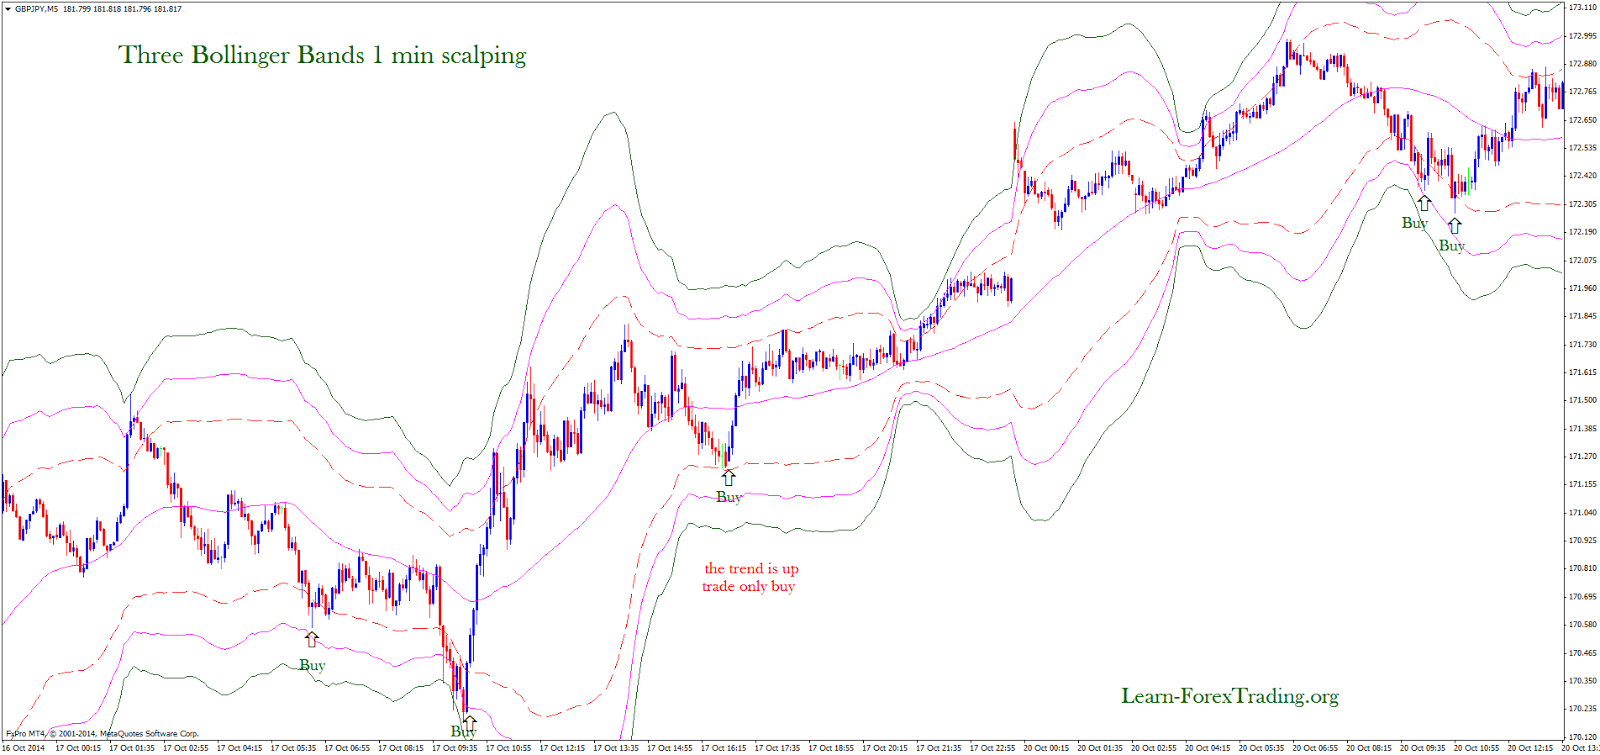 Bollinger bands don't work